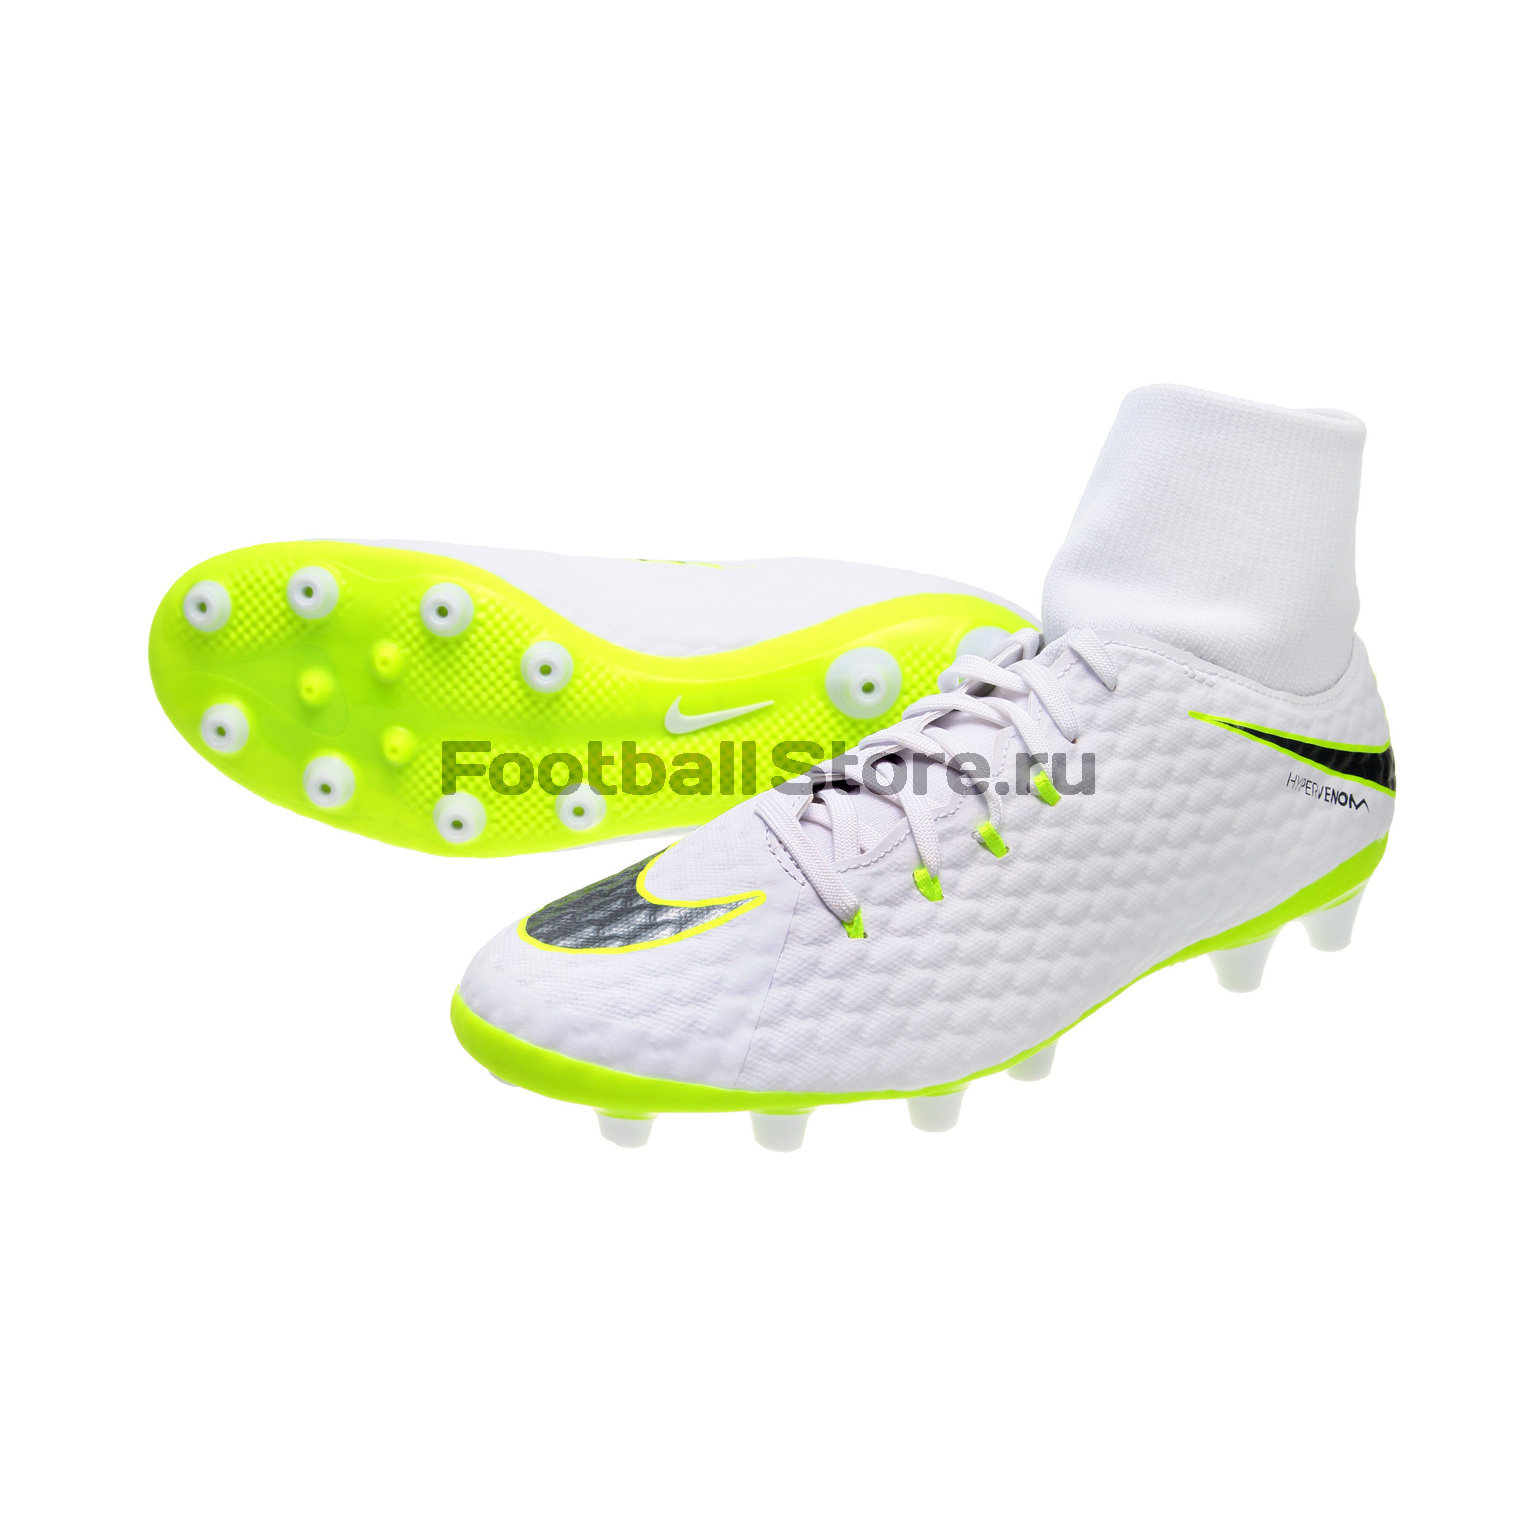 Бутсы Nike Phantom 3 Academy DF AG-Pro AH7266-107 бутсы nike шиповки nike jr tiempox legend vi tf 819191 018